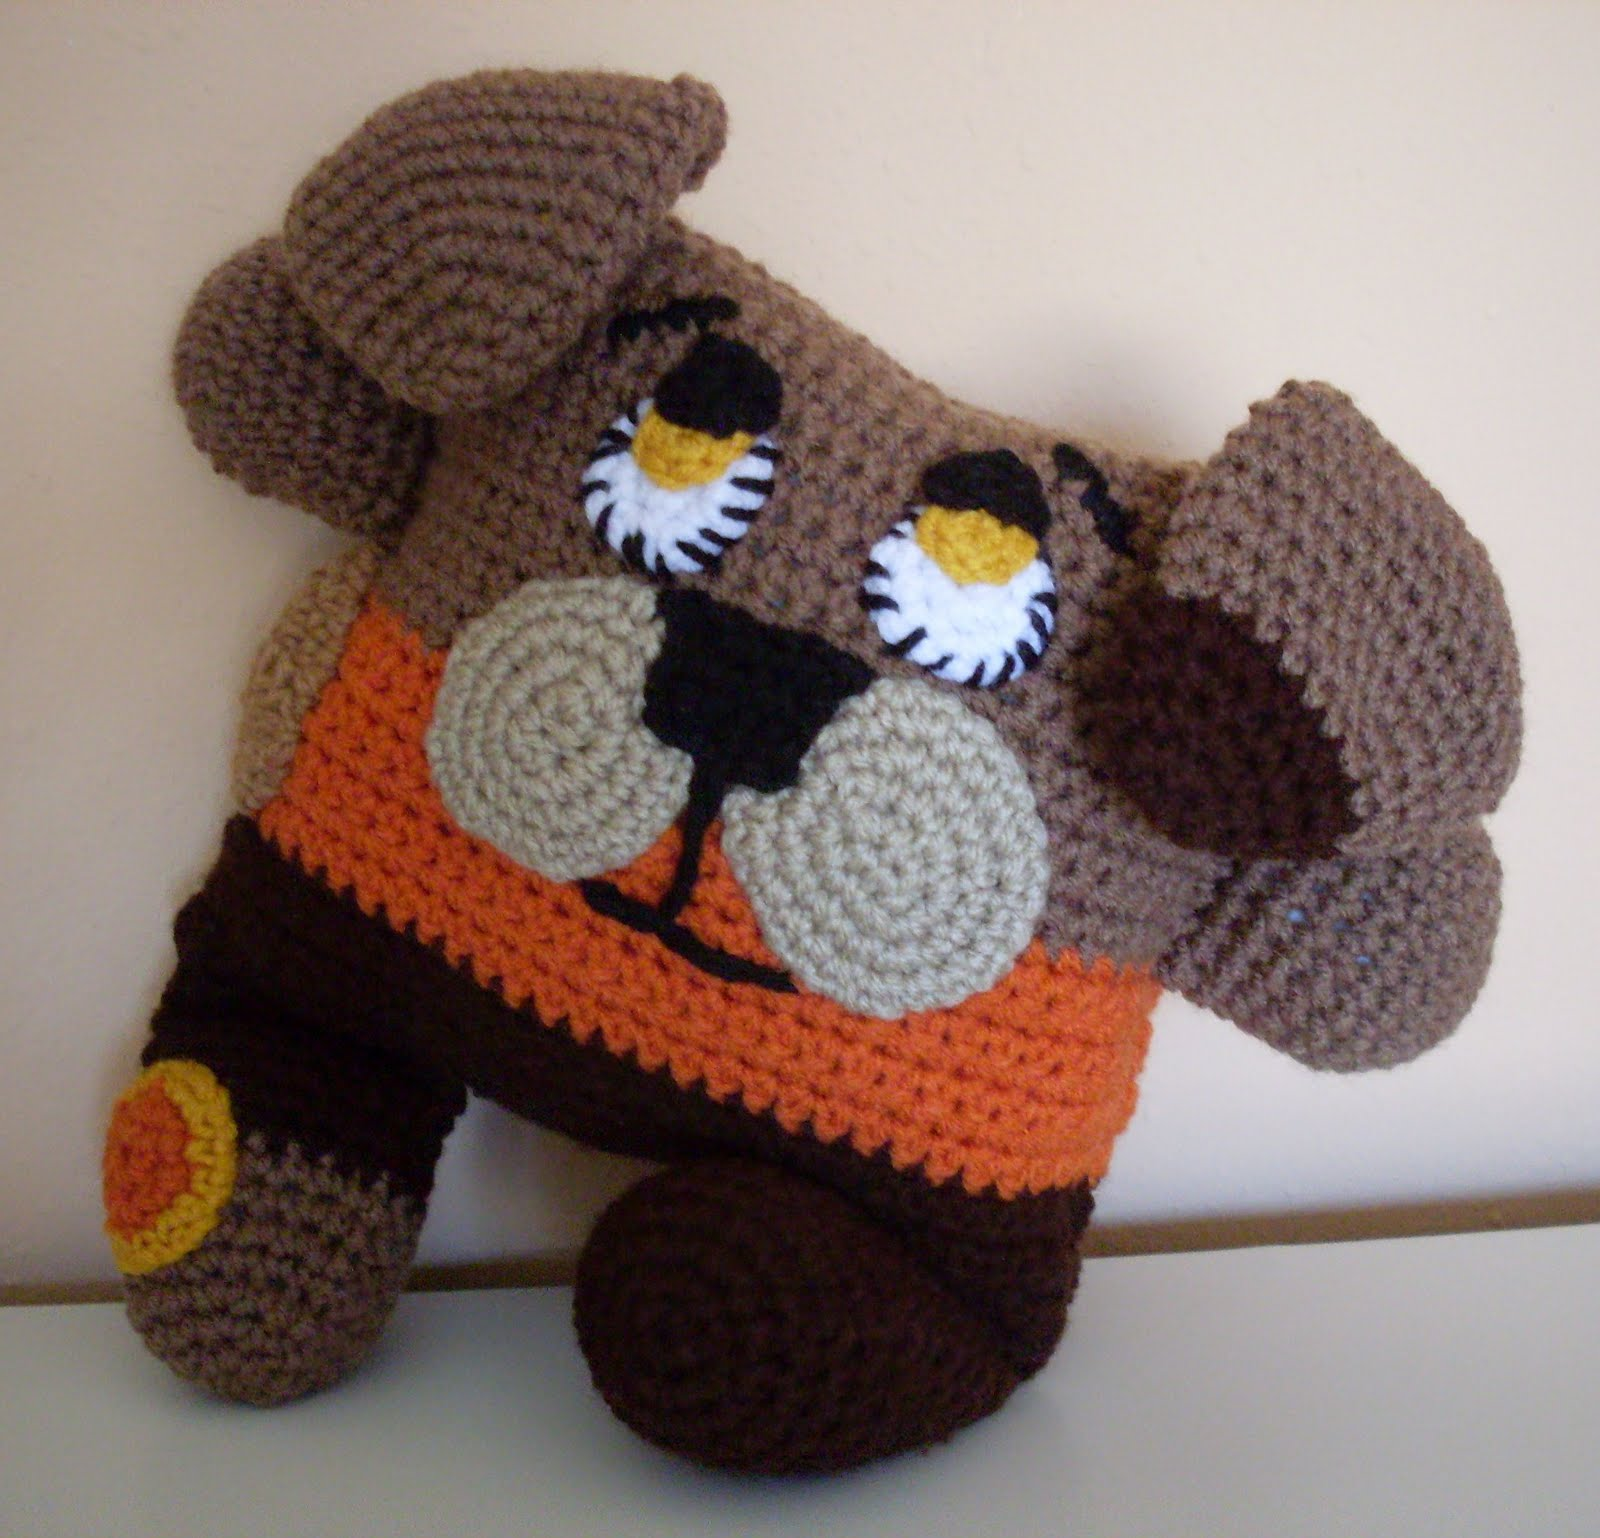 Crochet Patterns Pets : FREE CROCHET PATTERN FOR SMALL DOG - Crochet and Knitting Patterns